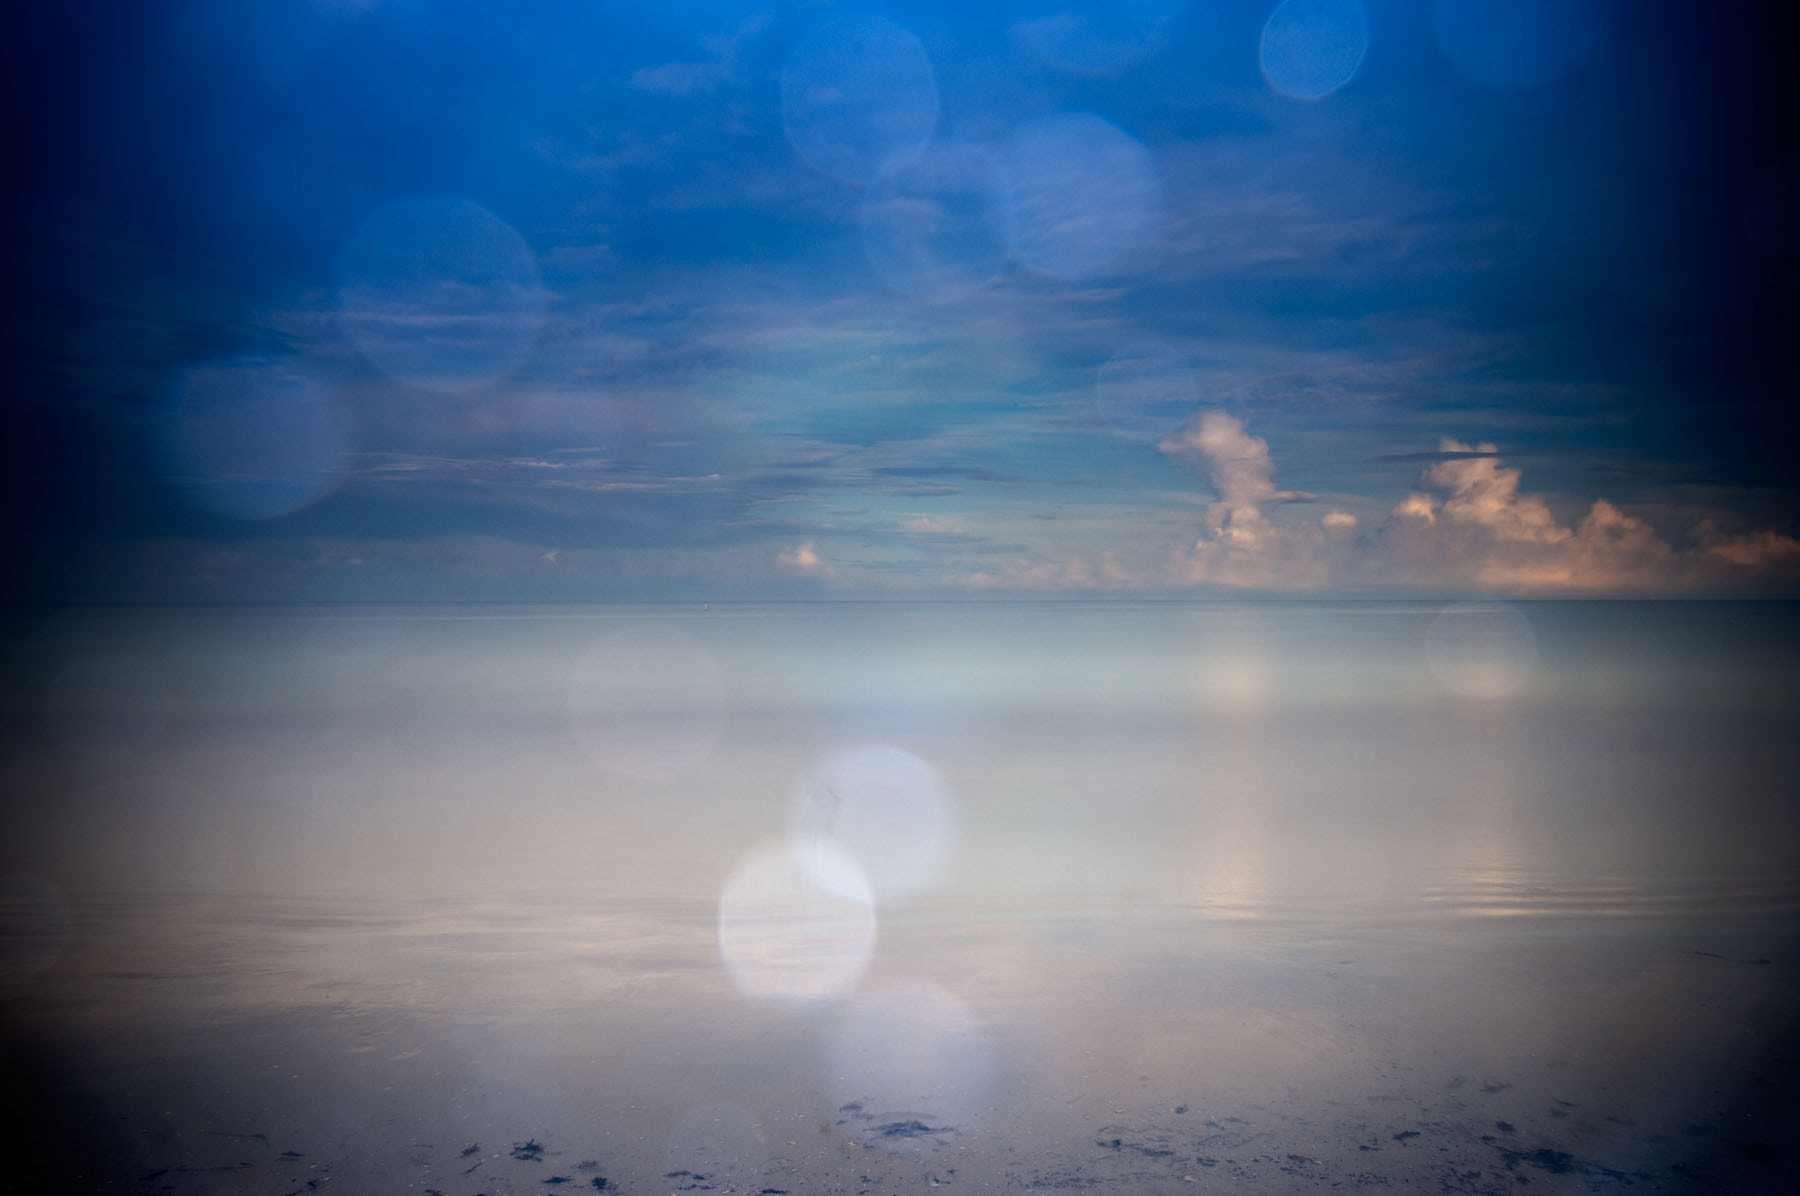 Photograph Series - Florida 2 by Pietro Canali on 500px